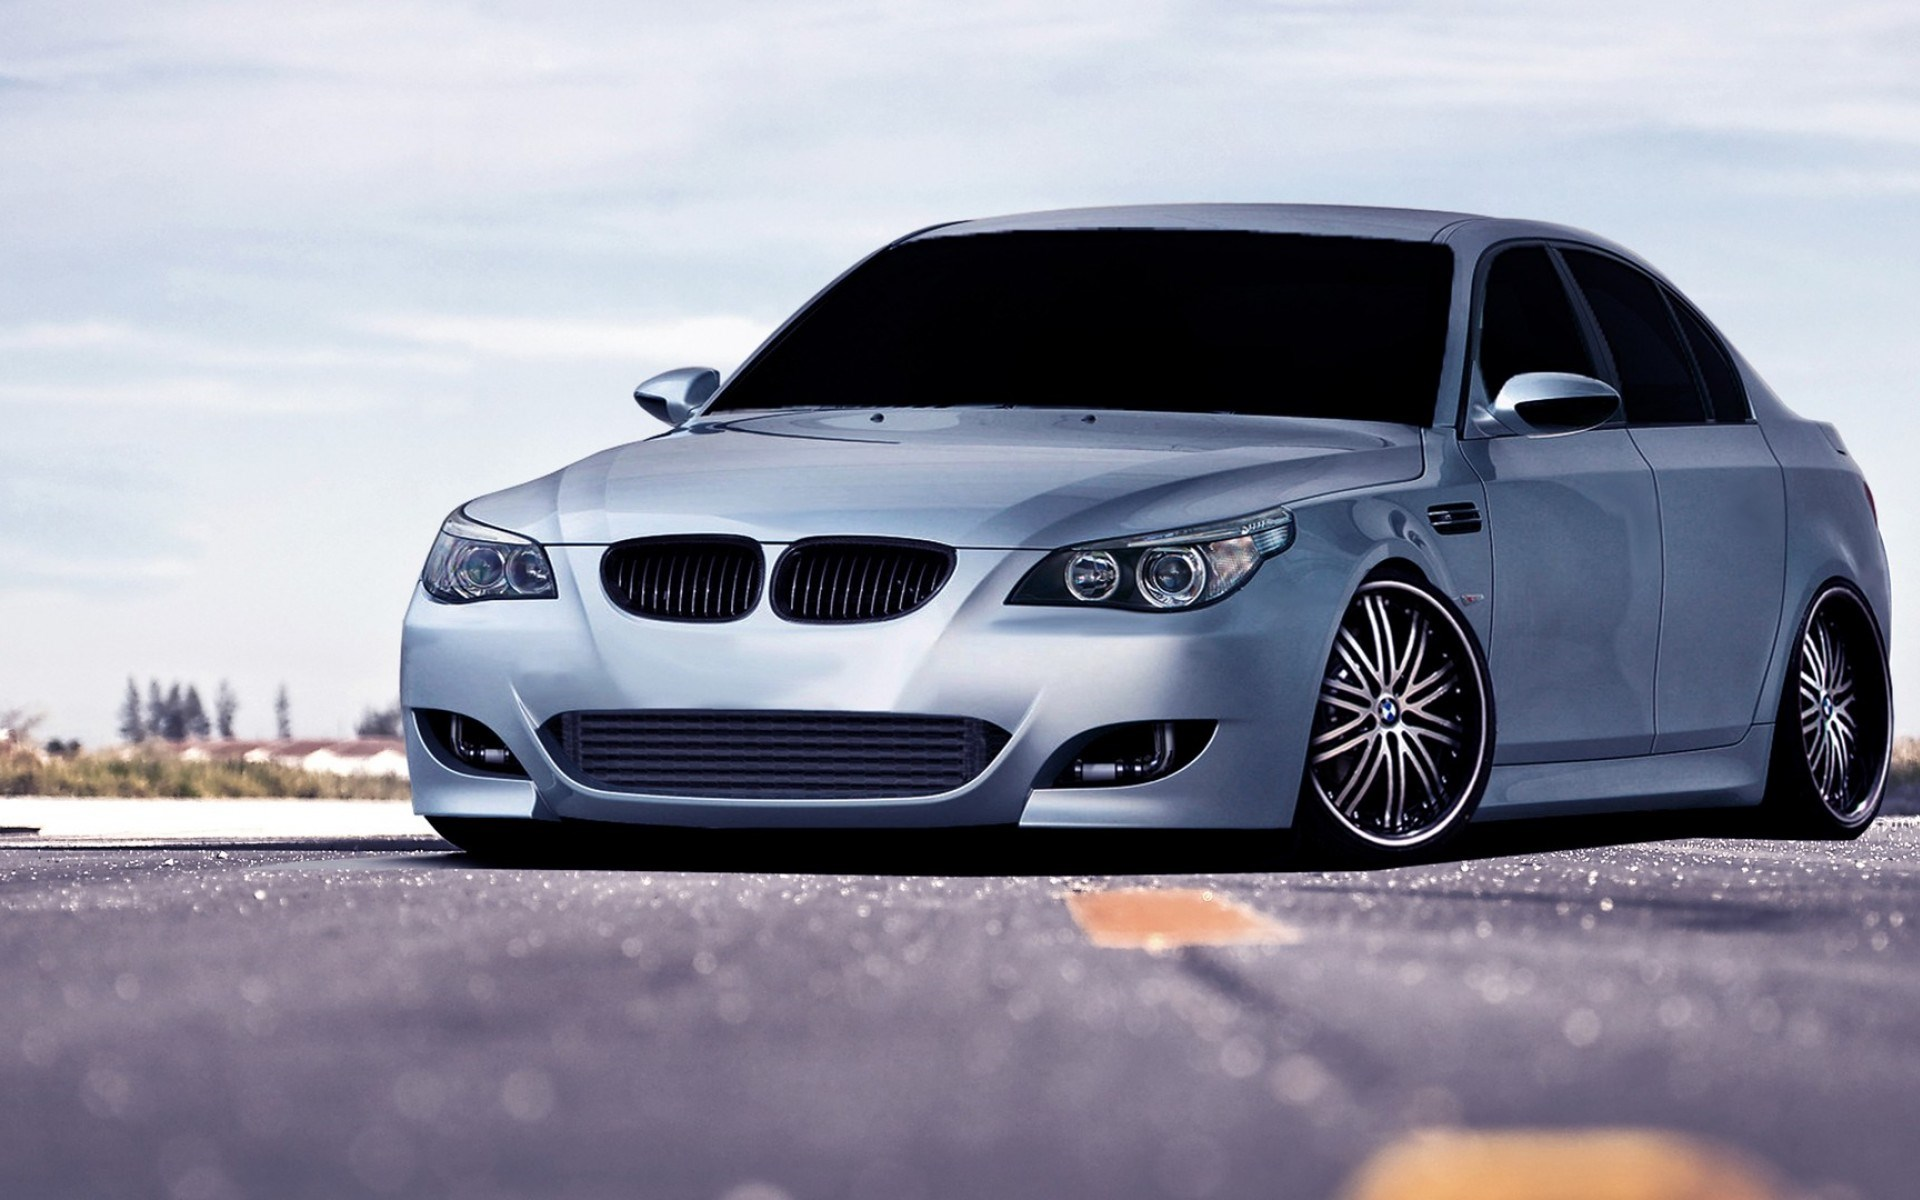 Full Hd Car Wallpapers 1080p Bmw Bmw M5 Full Hd Wallpaper And Background Image 1920x1200